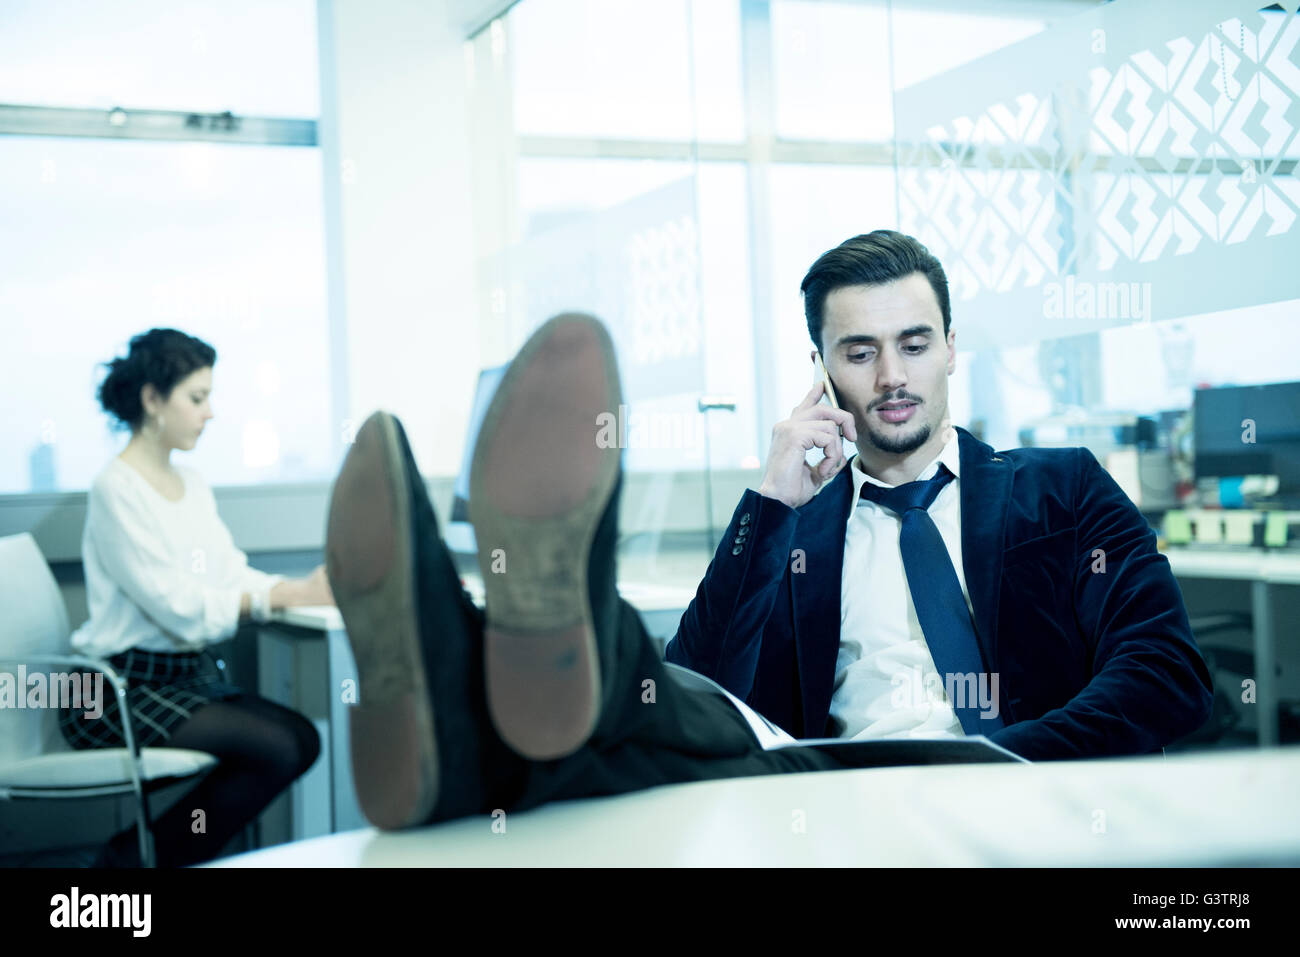 A professional man making a phone call in an office environment. - Stock Image